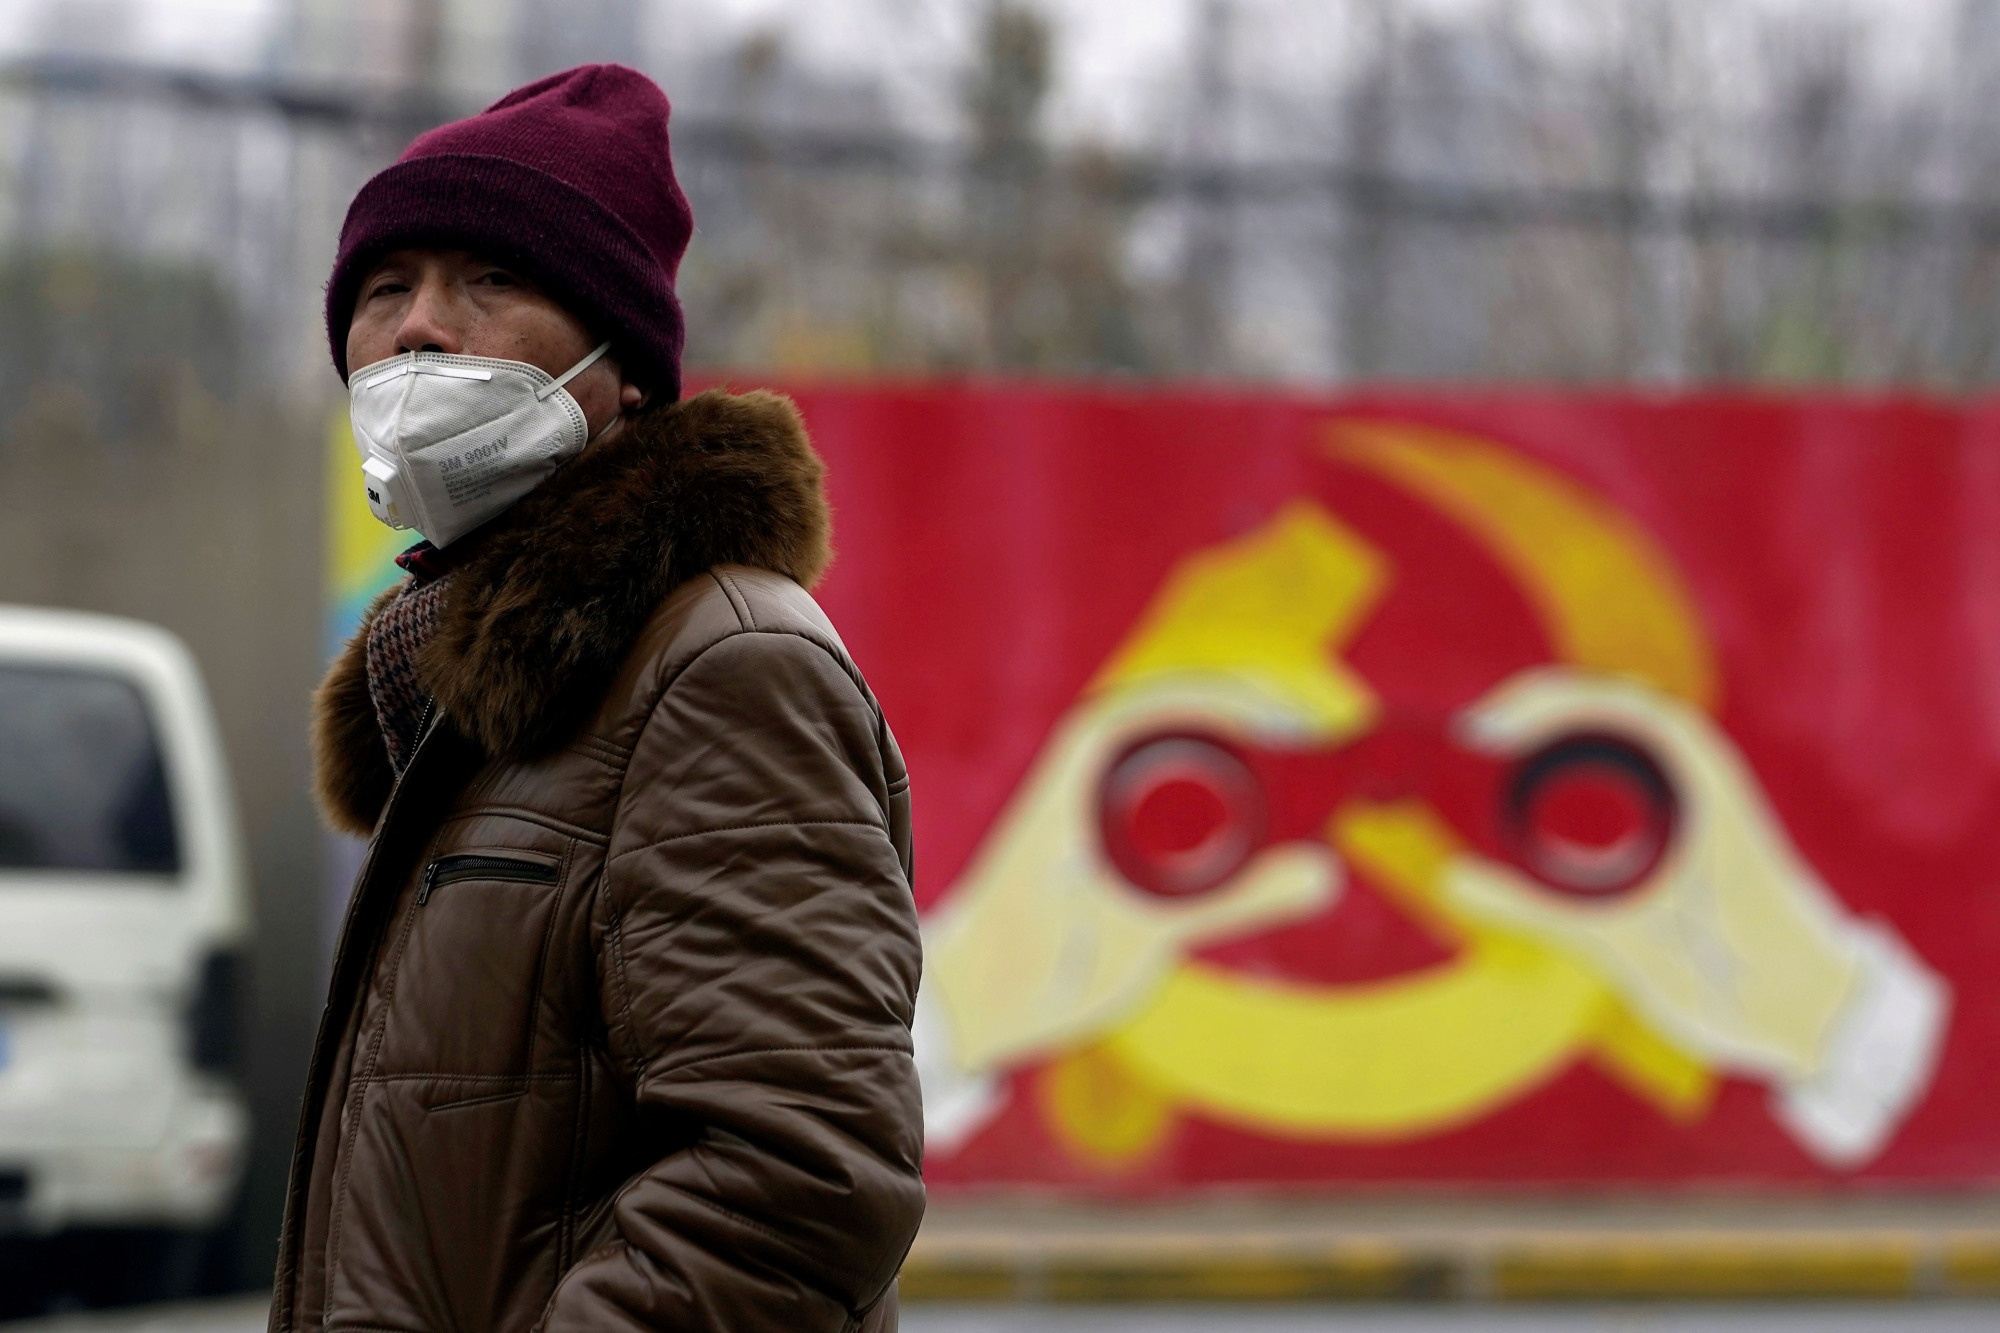 A man walks past a mural in Shanghai showing a modified image of the Chinese Communist Party emblem. | REUTERS